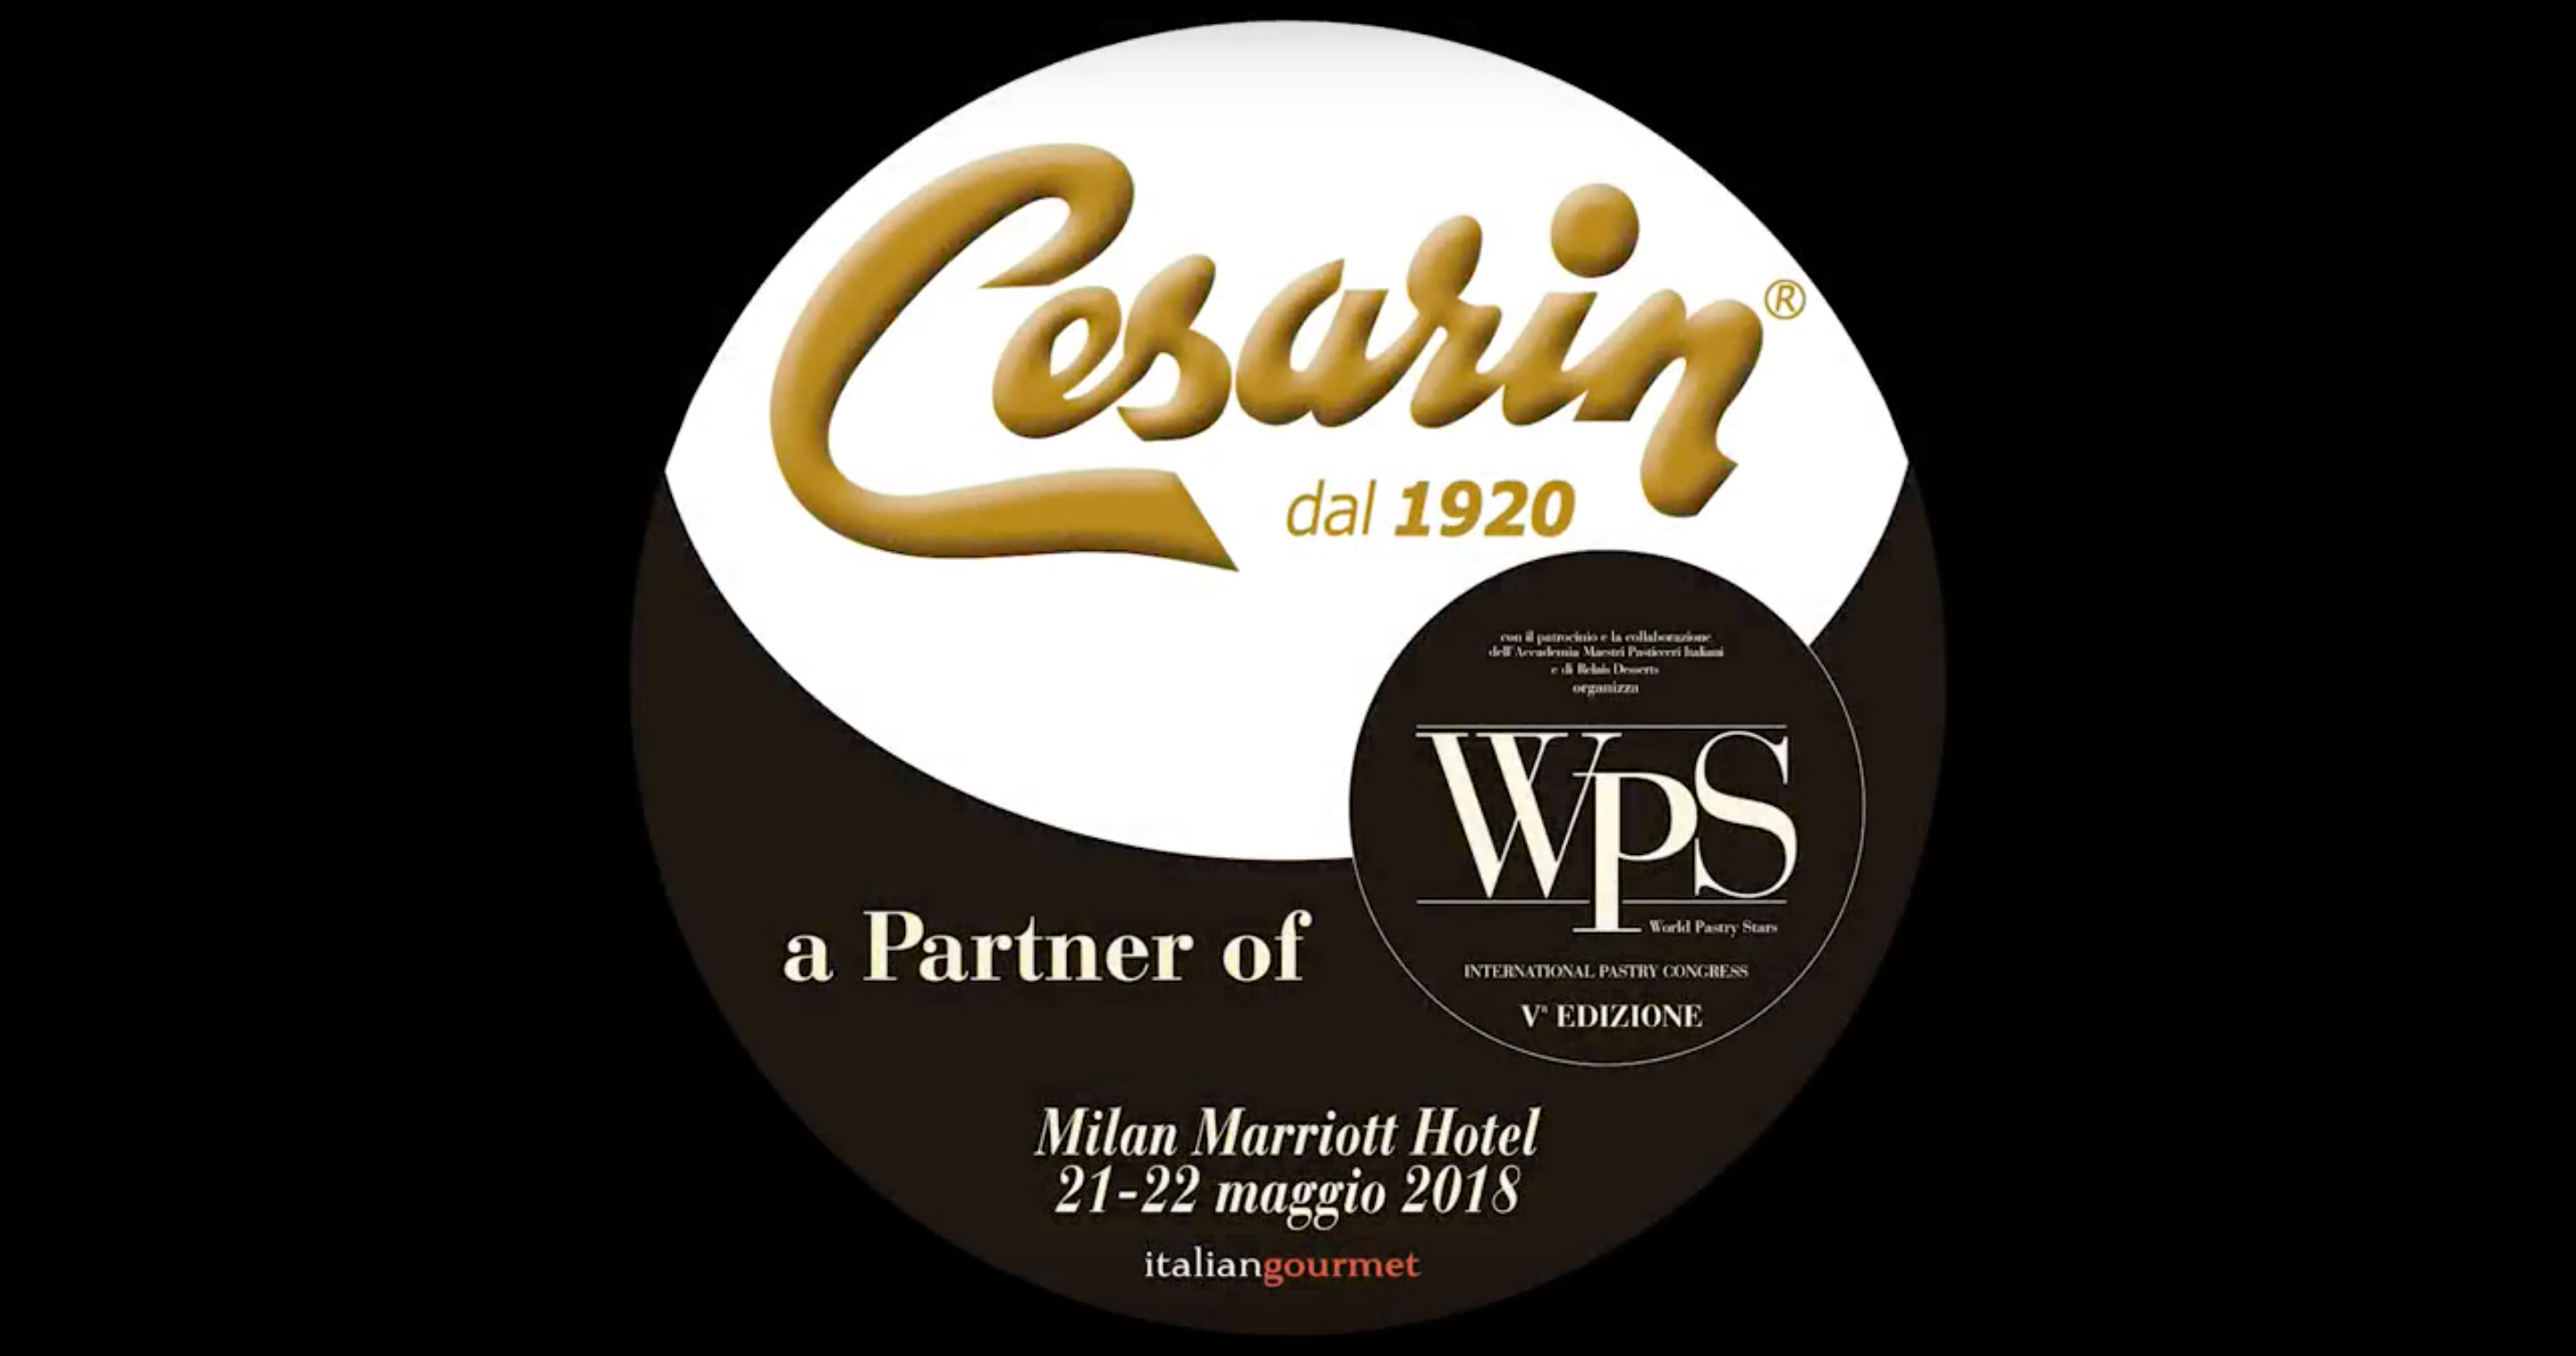 Cesarin partner Gold per World Pastry Star 2018